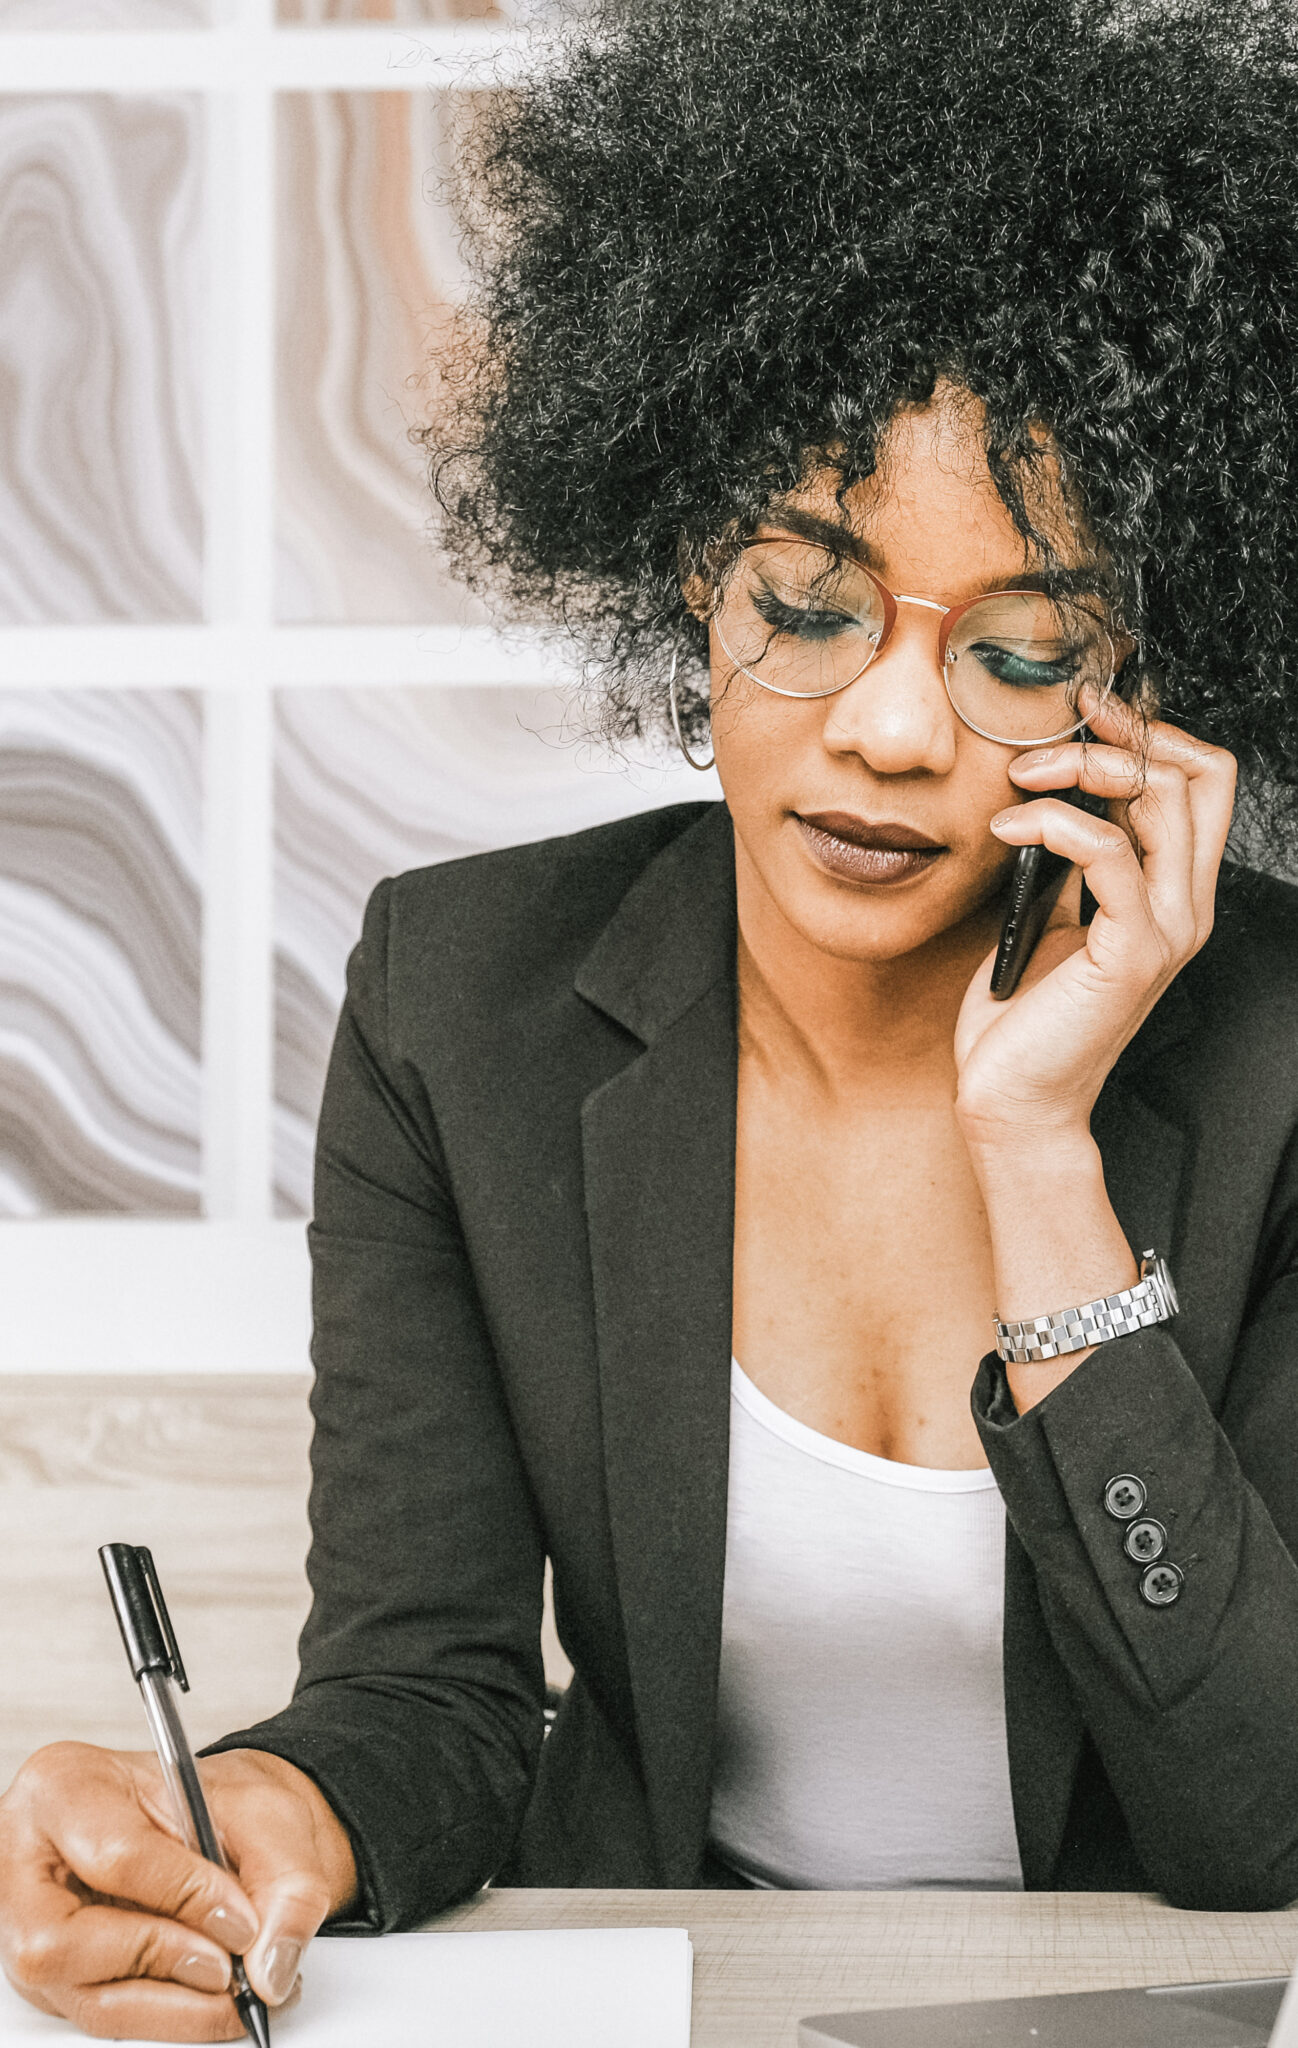 A woman writes down something at her desk on the phone.  These are tips that will help design a functional home office in a small space.